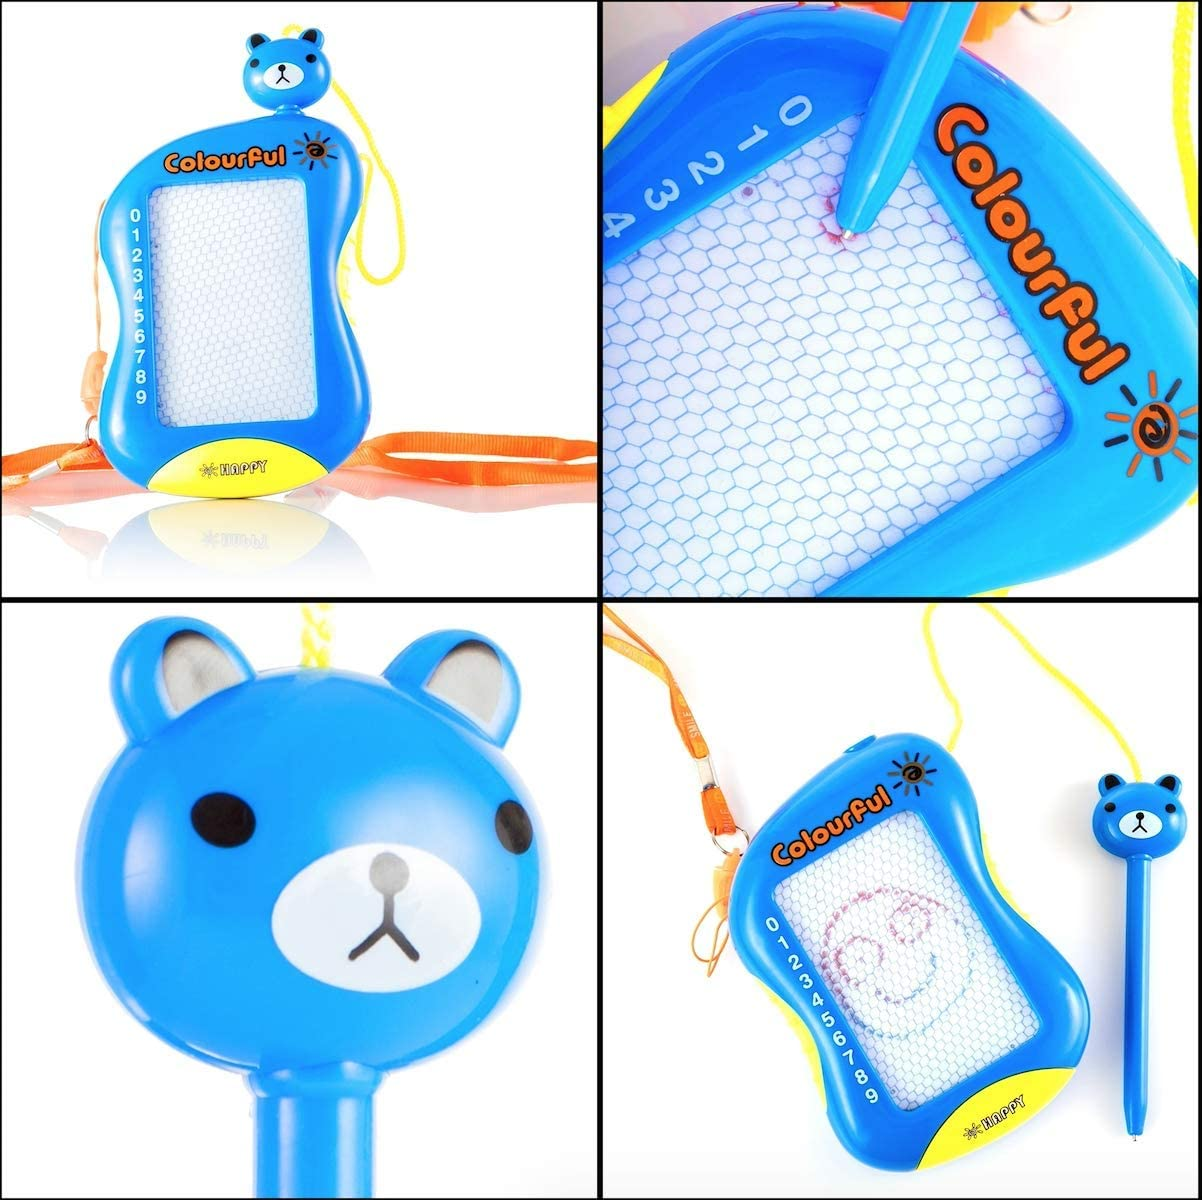 for Toddlers Kids Girls /& Boys Age 2 3 4 /& 5 Years Old Drawing /& Learning Sturdy /& Compact Erasable CHIPMUNKK Colorful Travel Size Magnetic Doodle Board Toy for Writing Reusable /& Mess Free